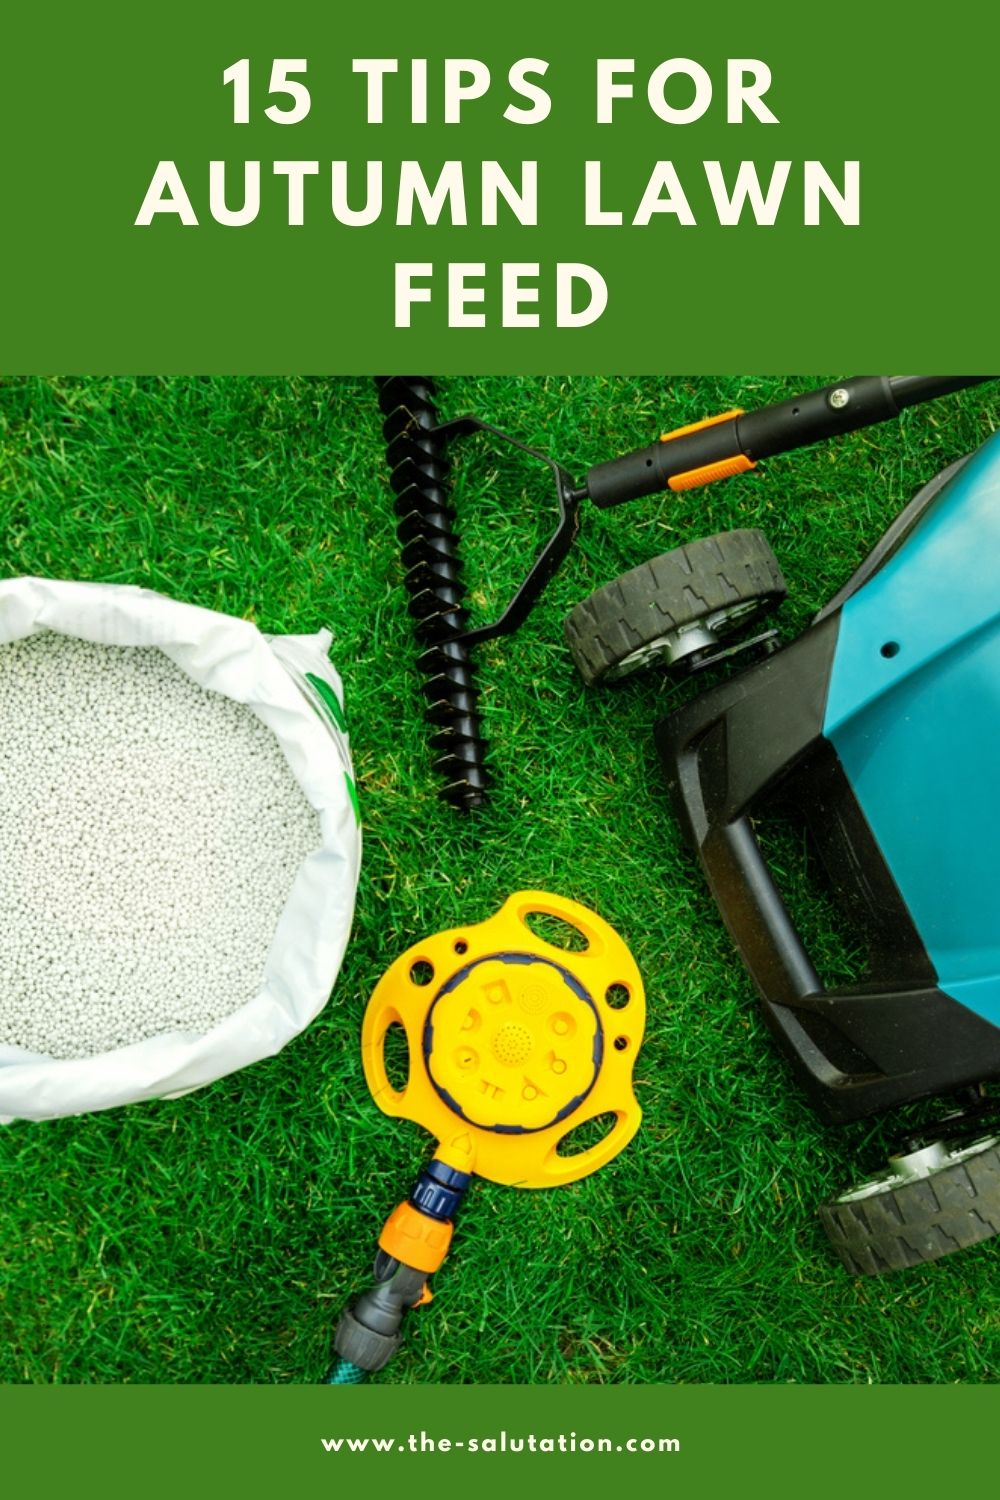 15 Tips for Autumn Lawn Feed 2